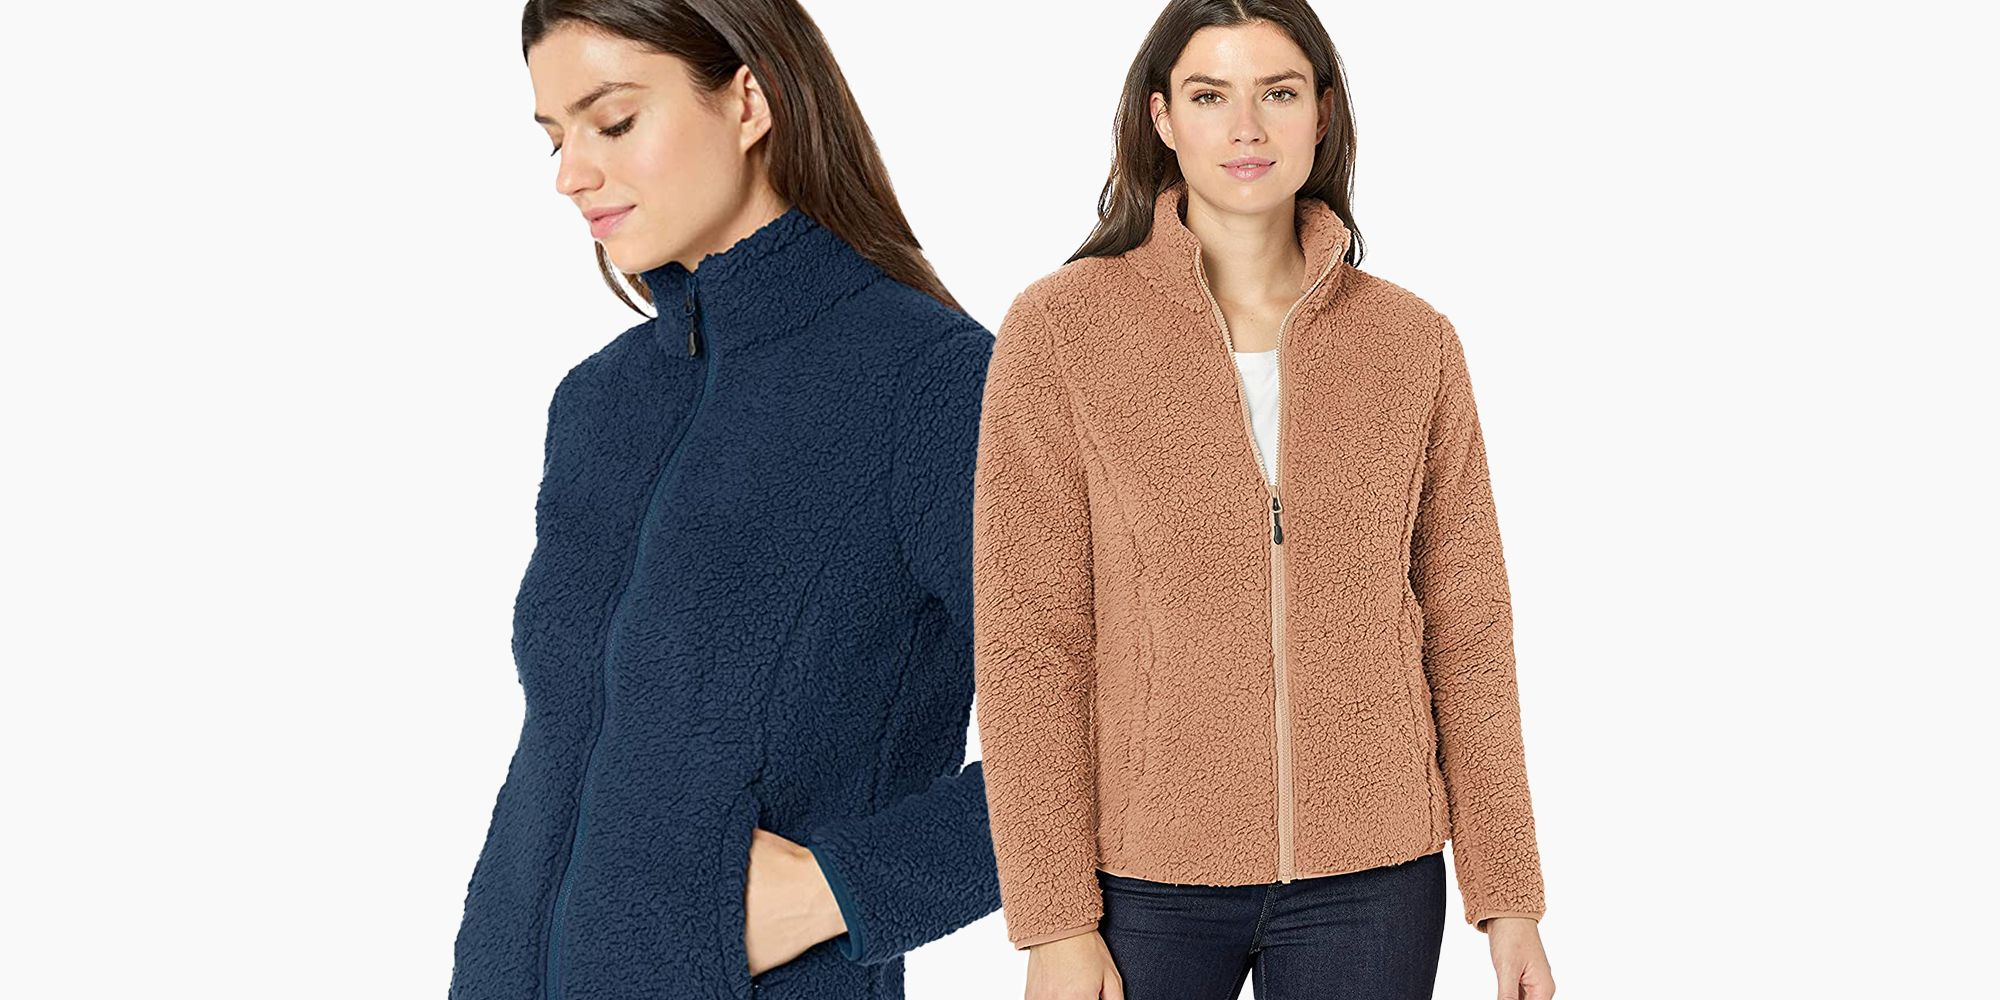 The Internet is Obsessed With This $30 Fleece, and It's Finally Back in Stock